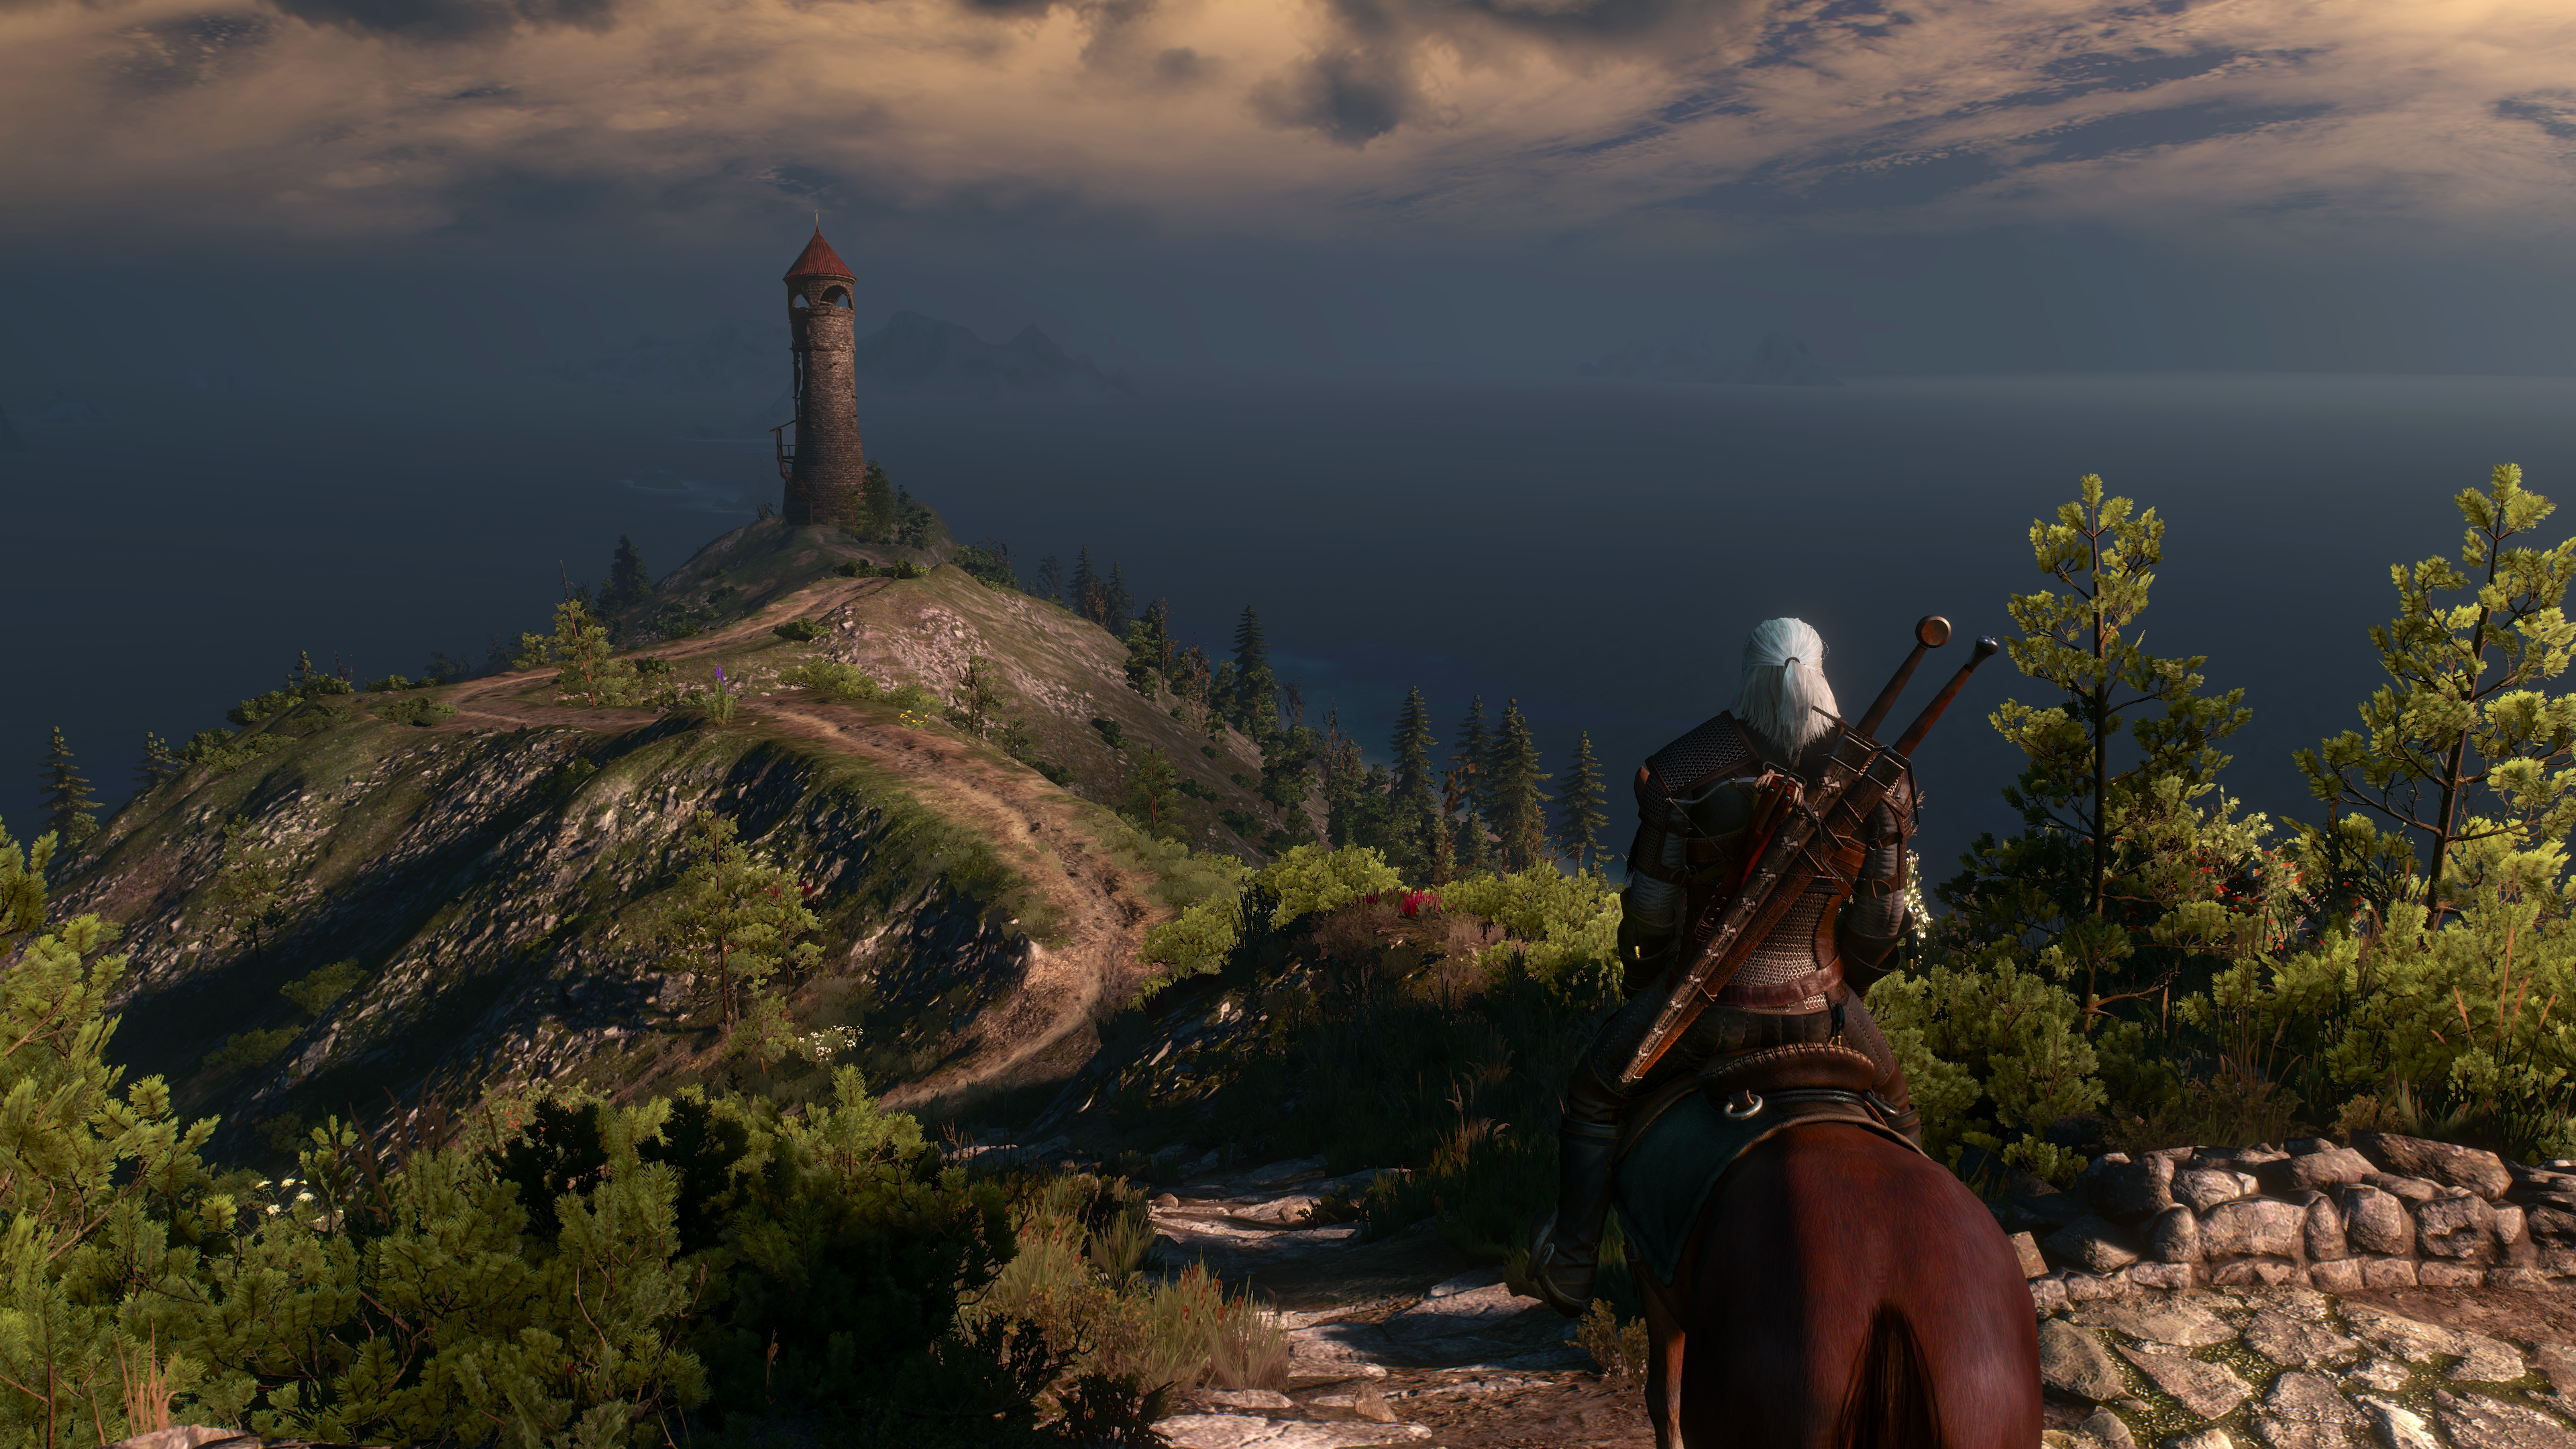 The_Witcher_3_Wild_Hunt_A_lonely_tower,_